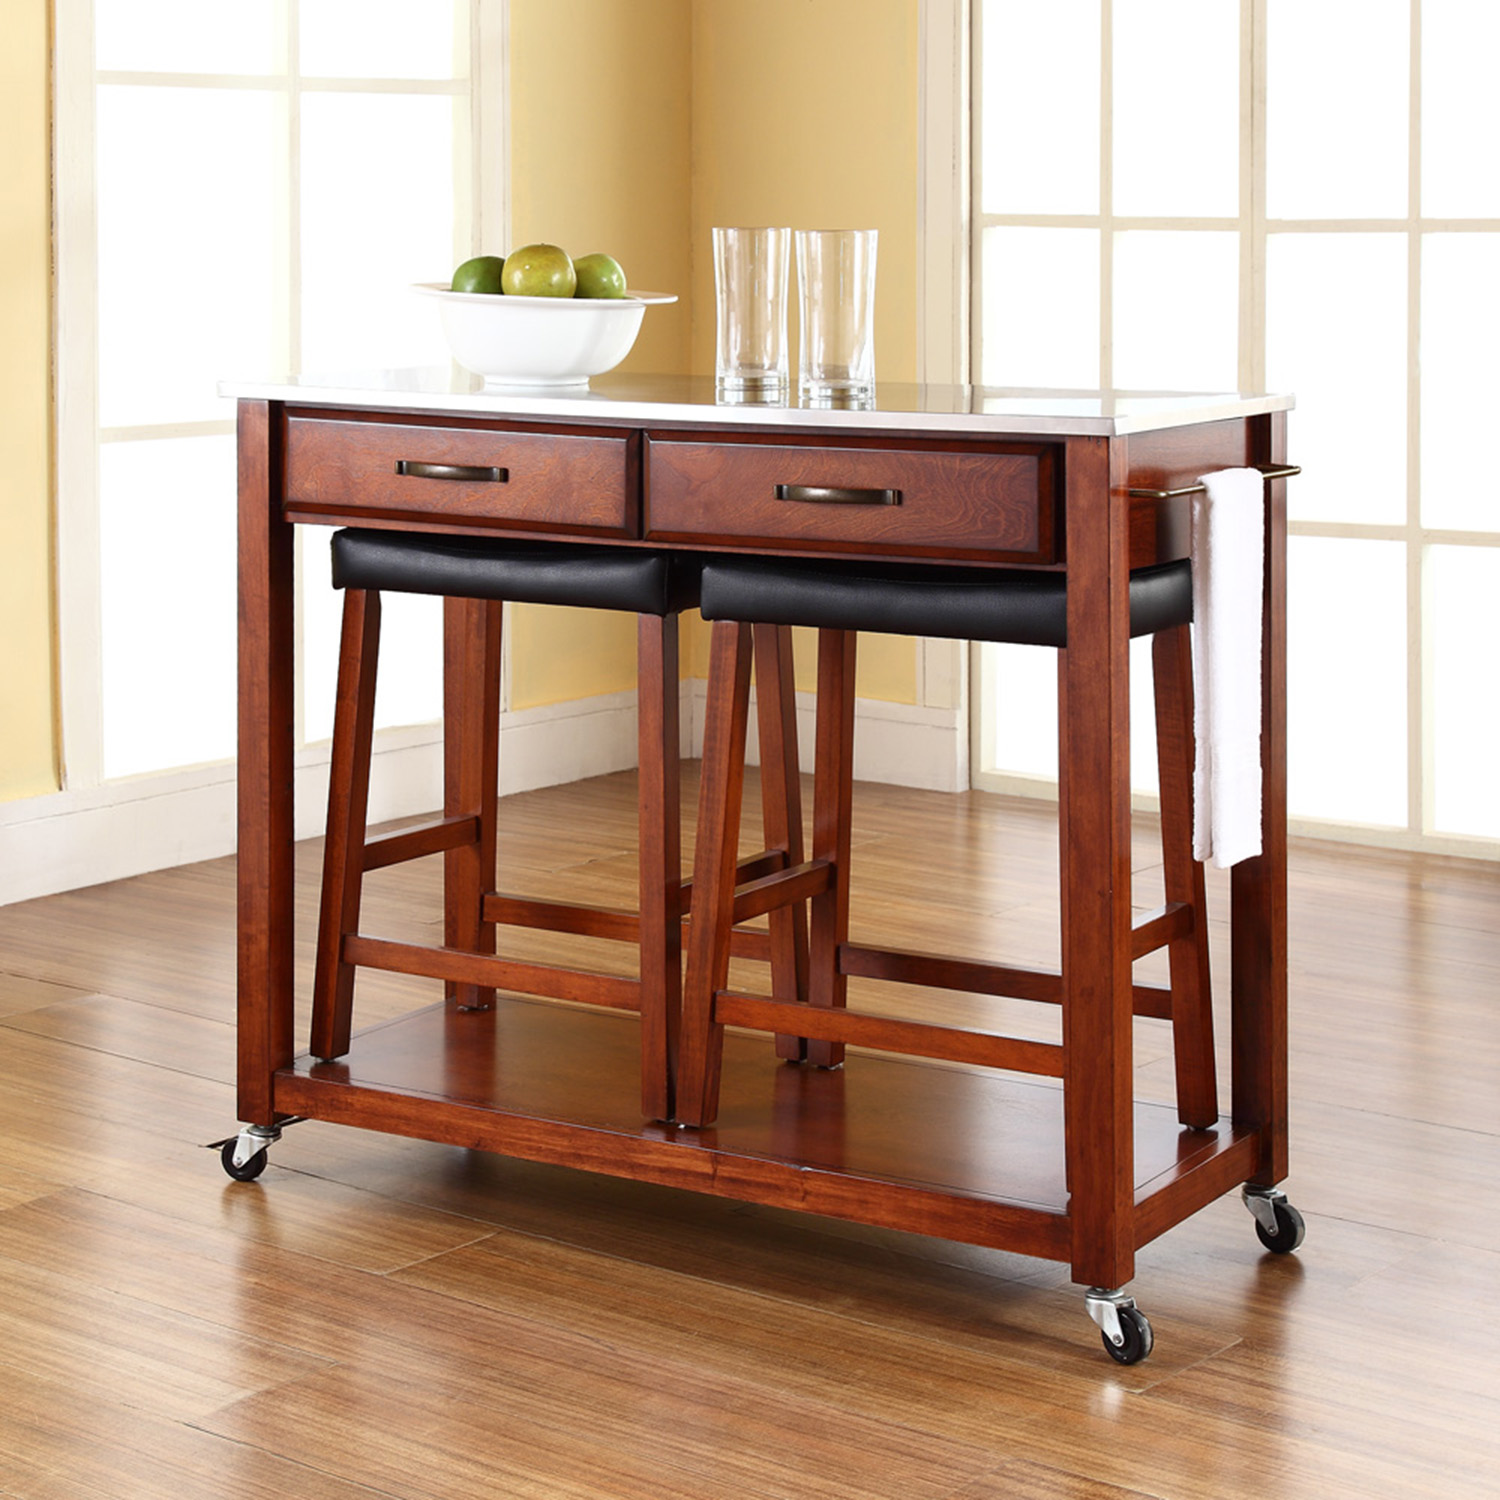 Stainless Steel Top Kitchen Island Cart and Saddle Stools - Classic Cherry - CROS-KF300524CH